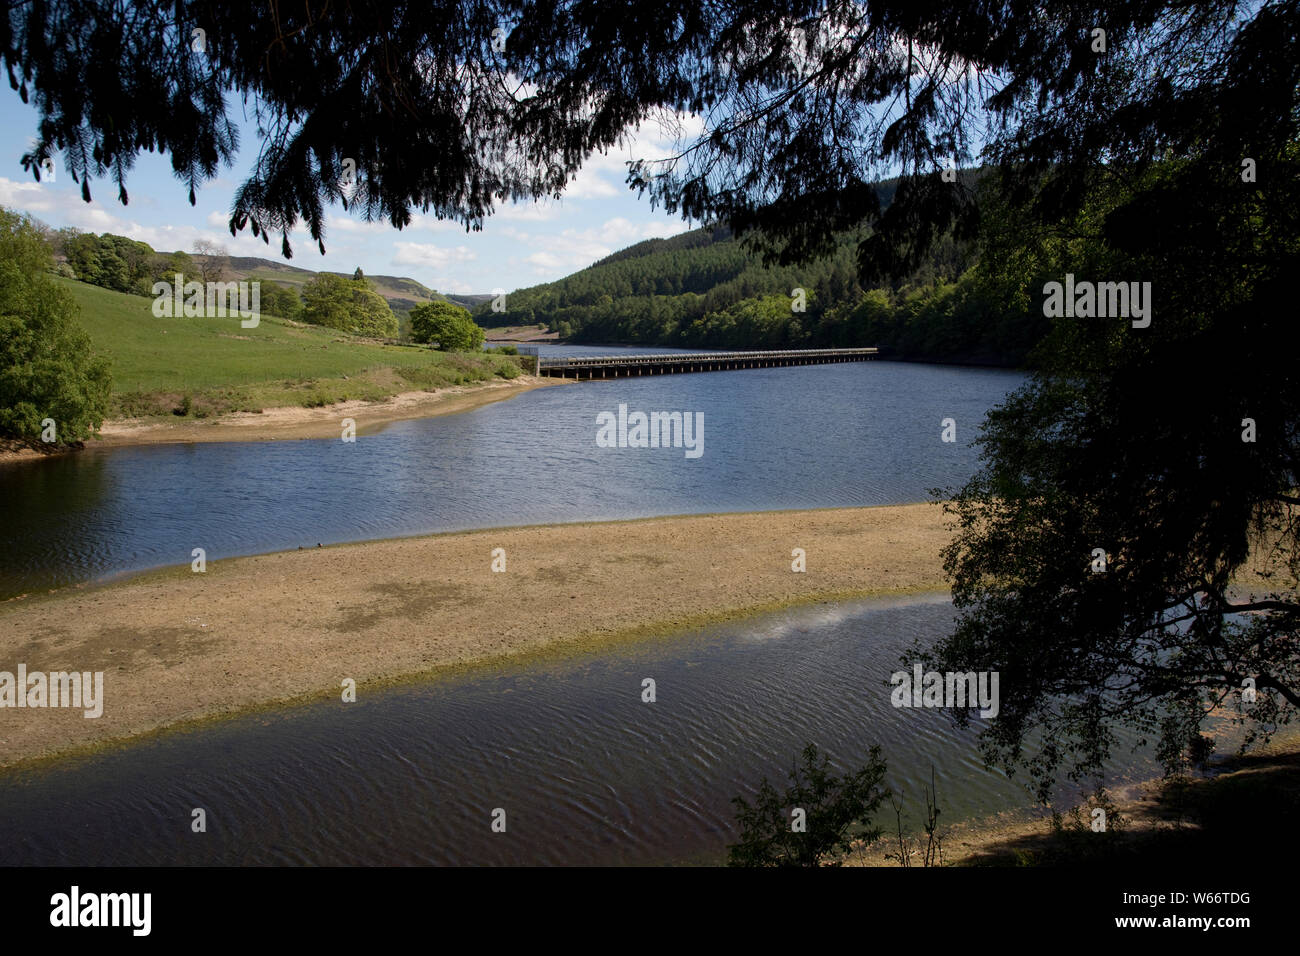 Low water level in the Ladybower Reservoir, the largest (holding 6300 million gallons) of three water storage reservoirs in the Derwent Valley, Peak D Stock Photo